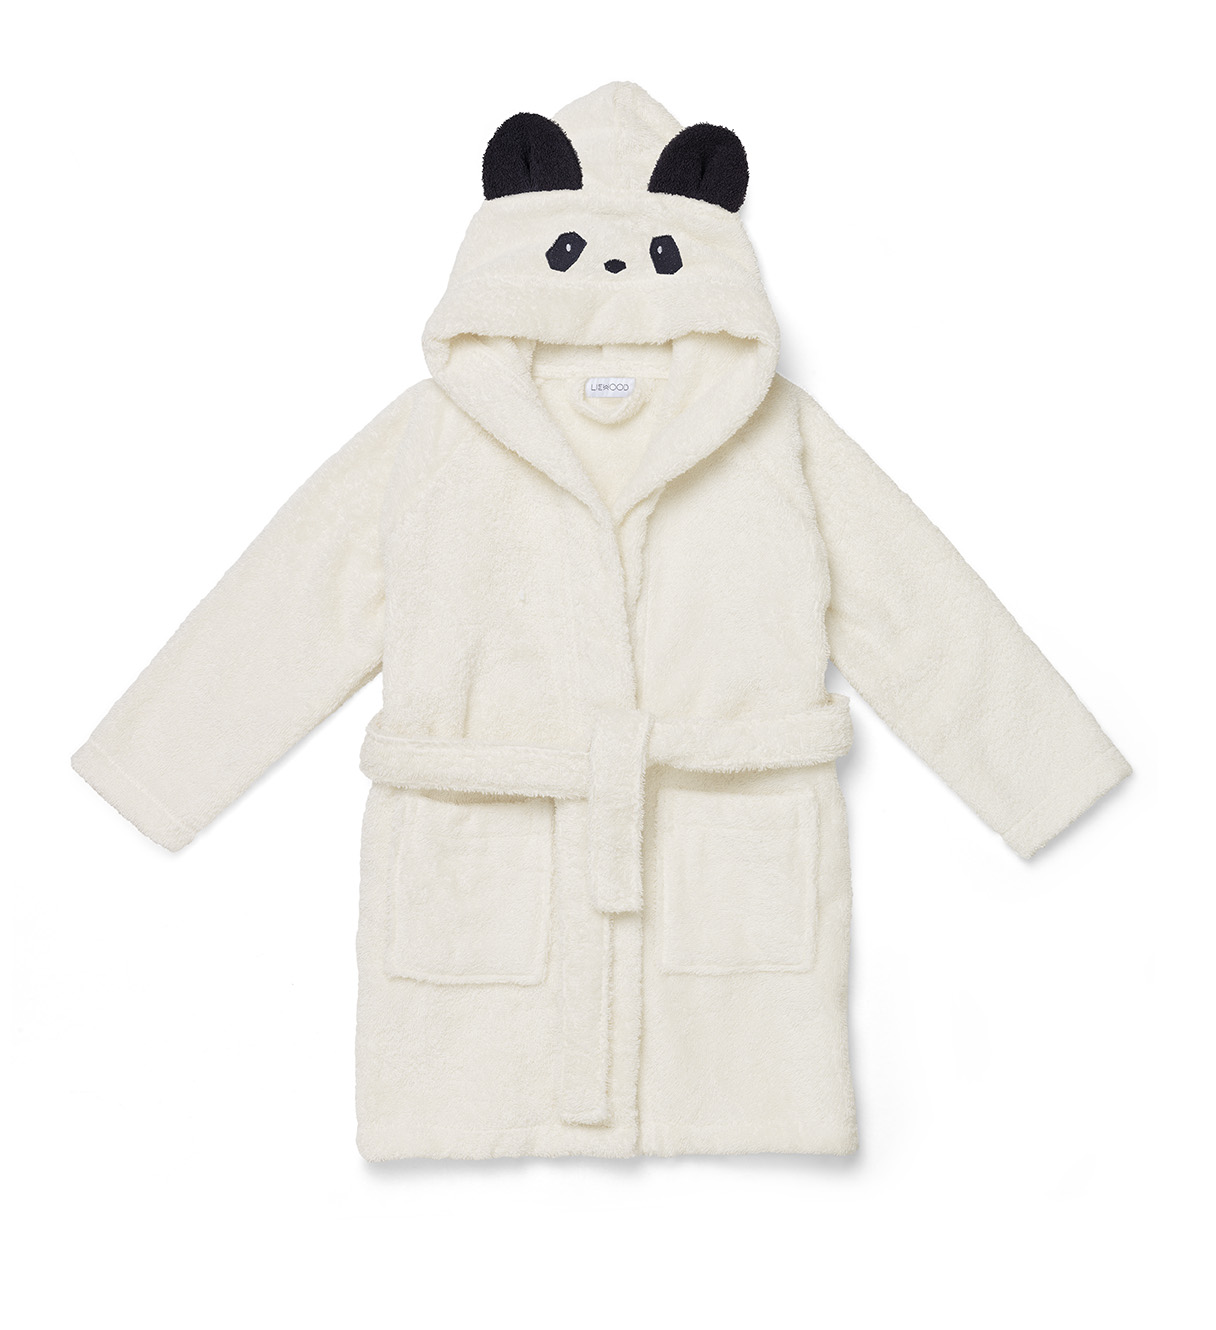 Liewood Ecru - Lily bathrobe Panda - Homeware